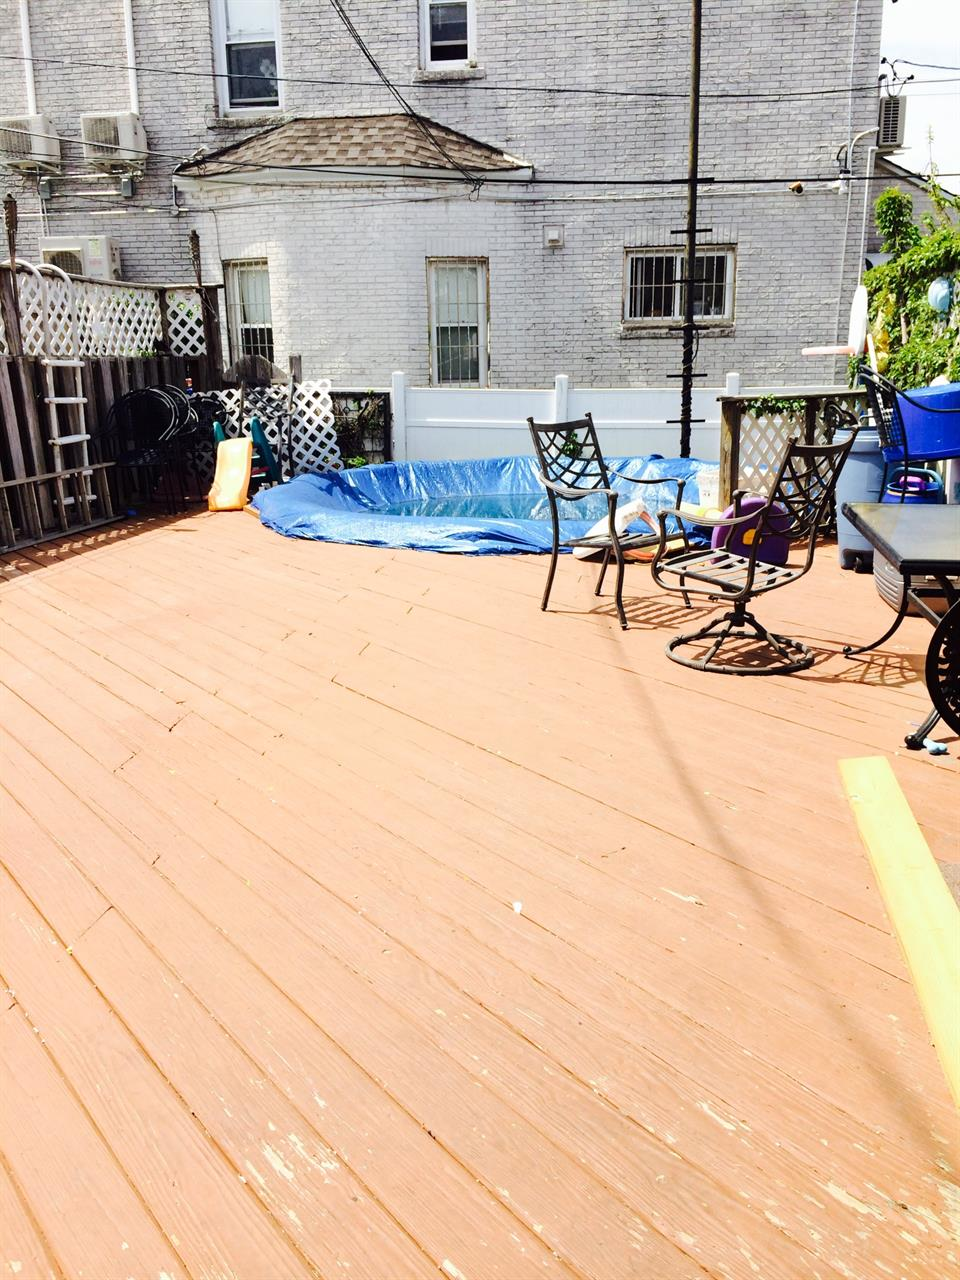 Additional photo for property listing at 7718 14th Avenue  Brooklyn, New York 11228 United States